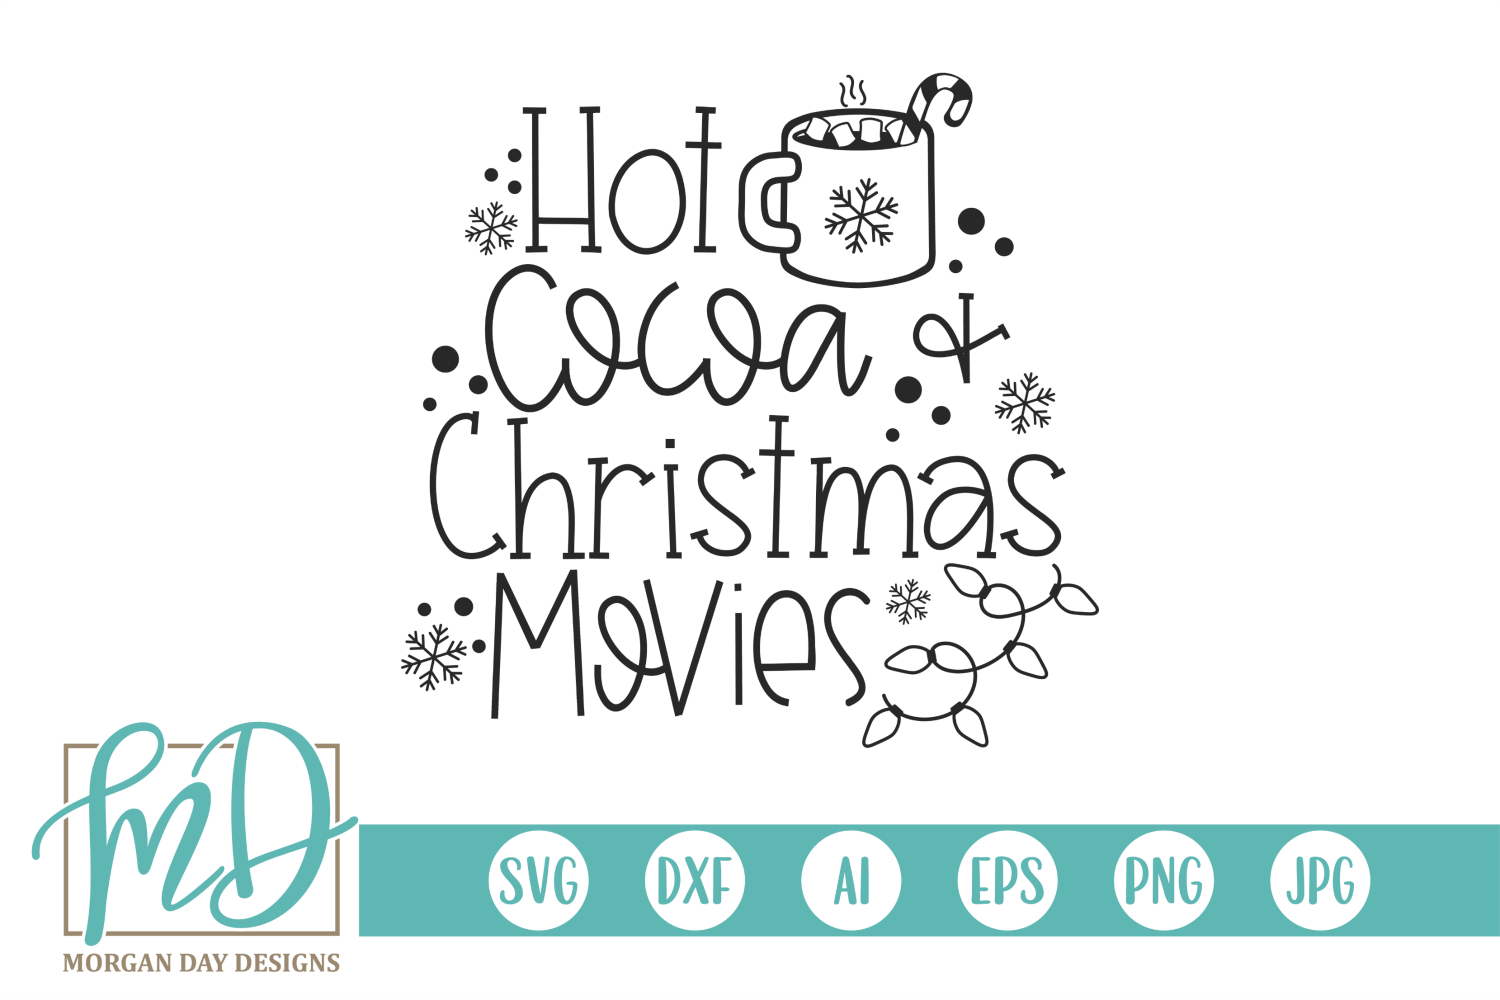 Download Free Hot Cocoa And Christmas Movies Graphic By Morgan Day Designs for Cricut Explore, Silhouette and other cutting machines.